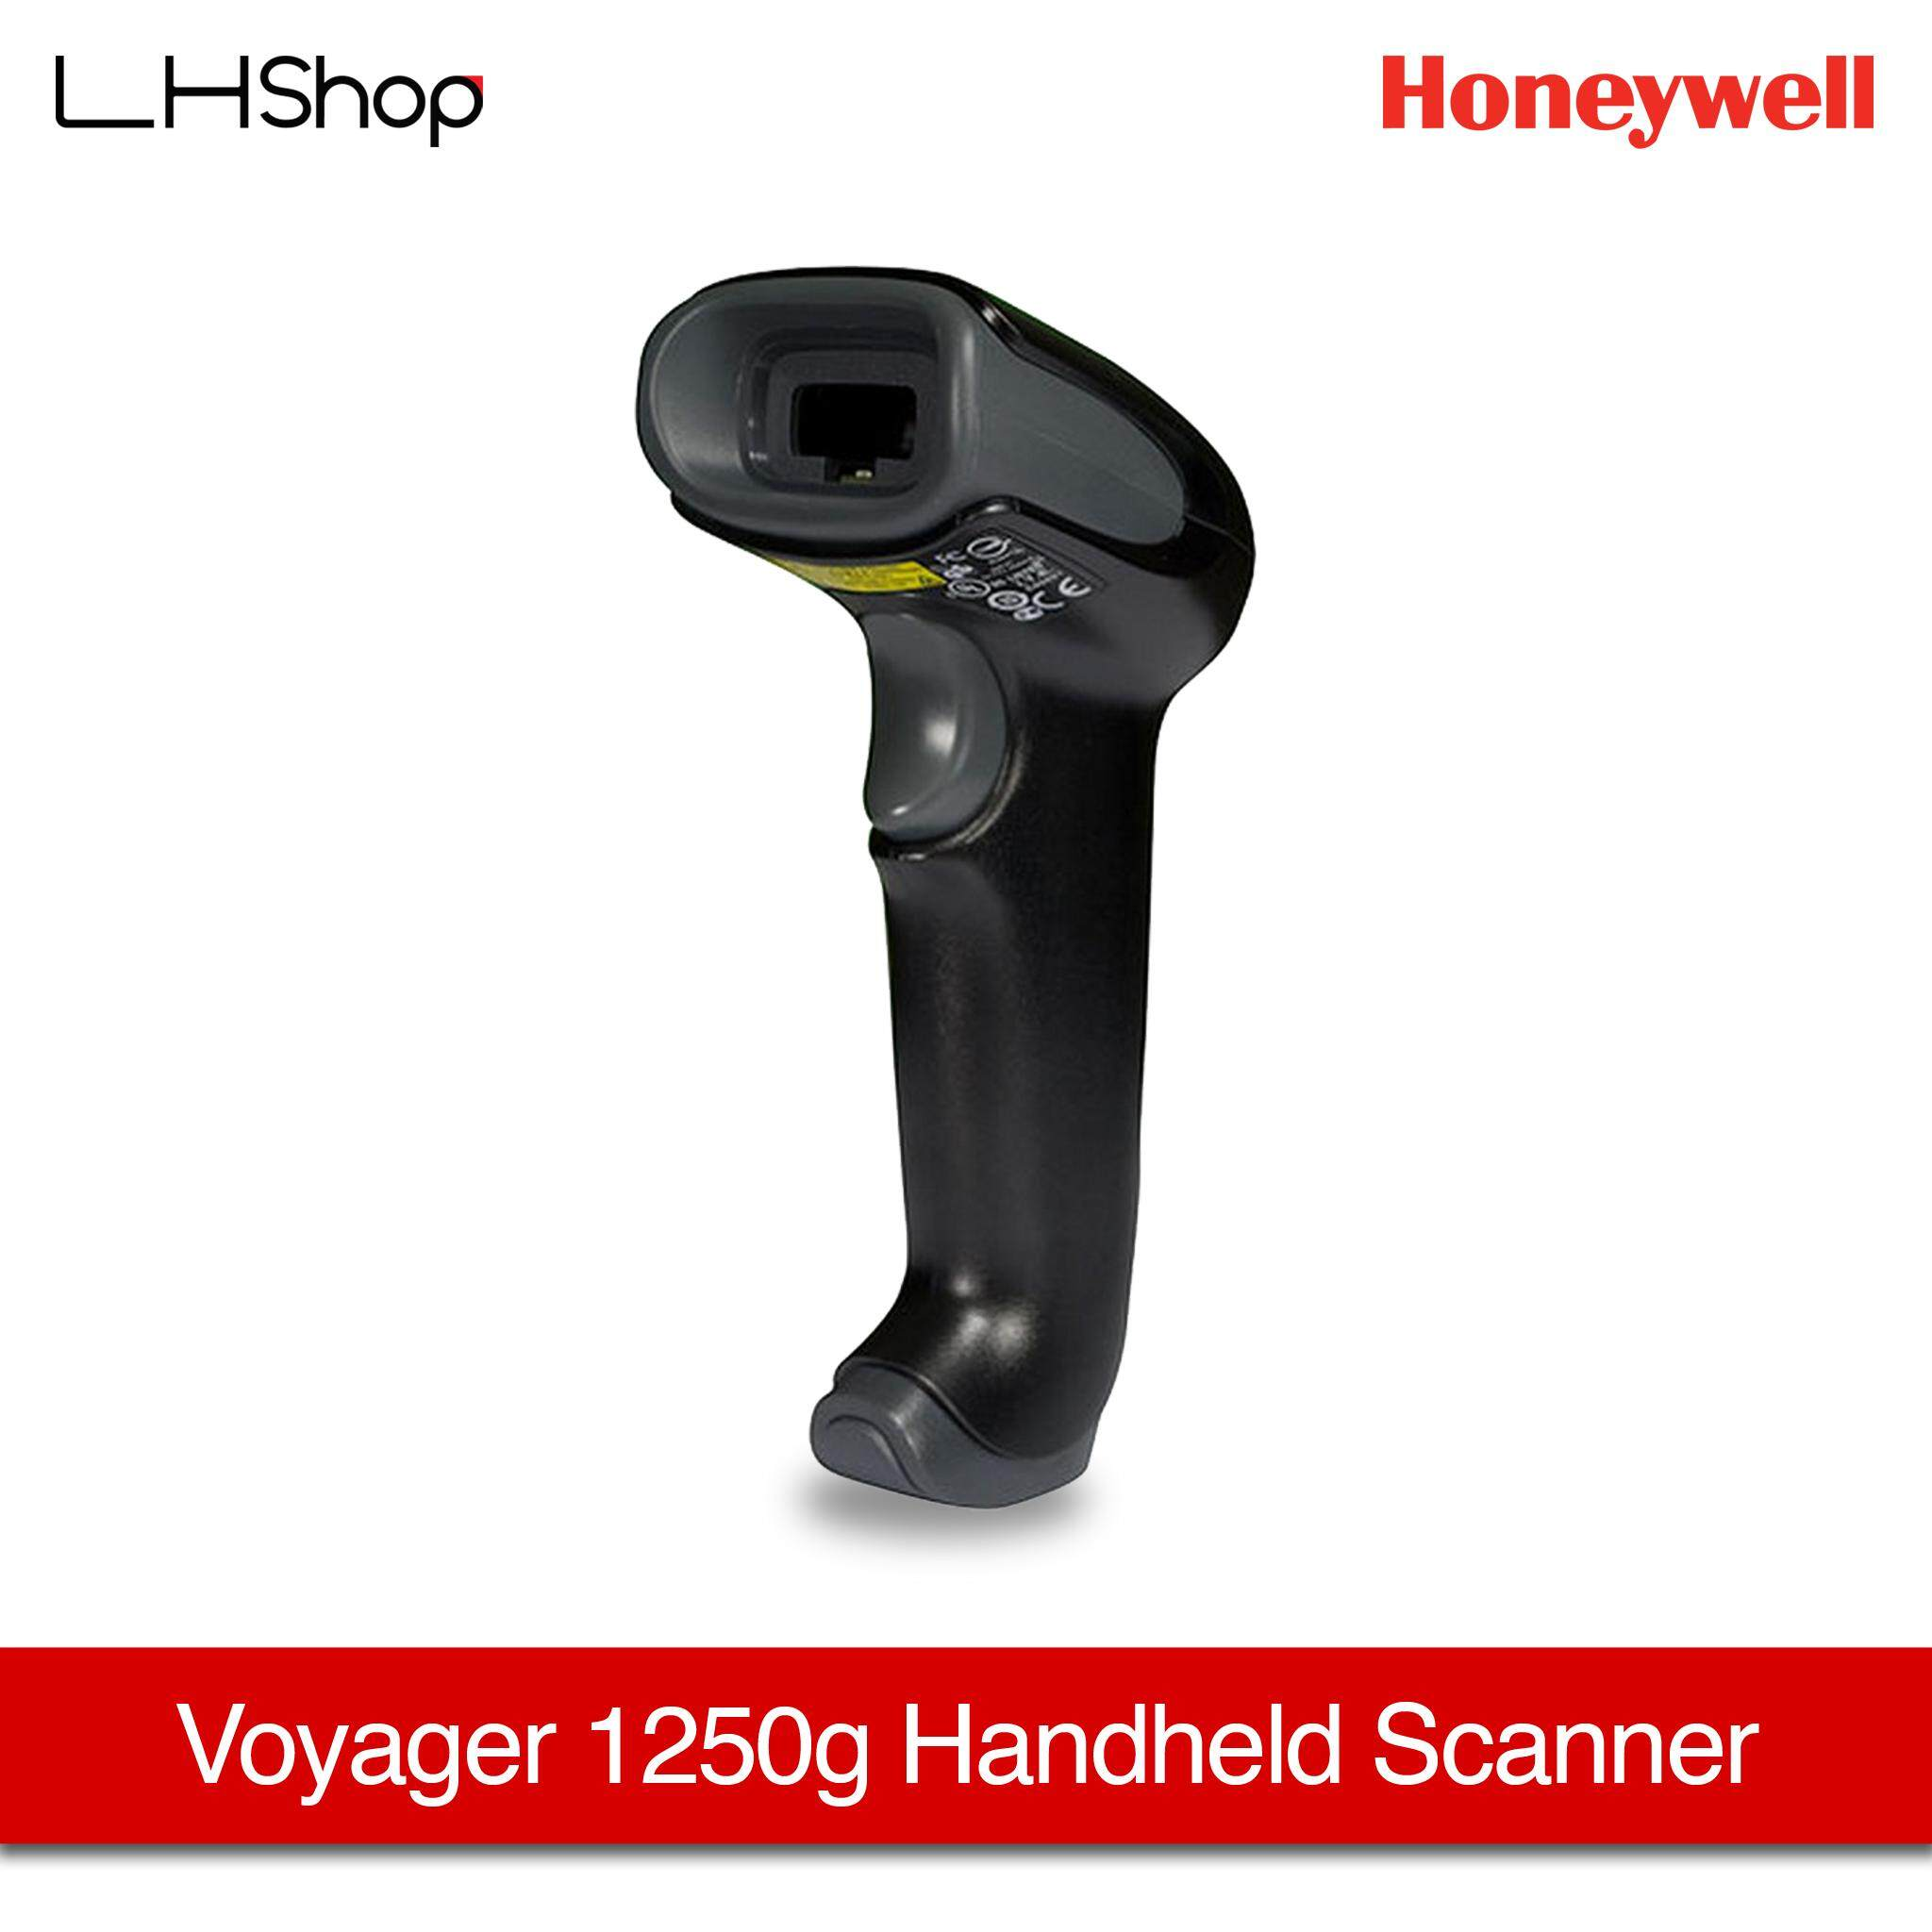 Honeywell Voyager 1250G Handheld Barcode Scanners [1250G-2USB-1] with stand (Black)